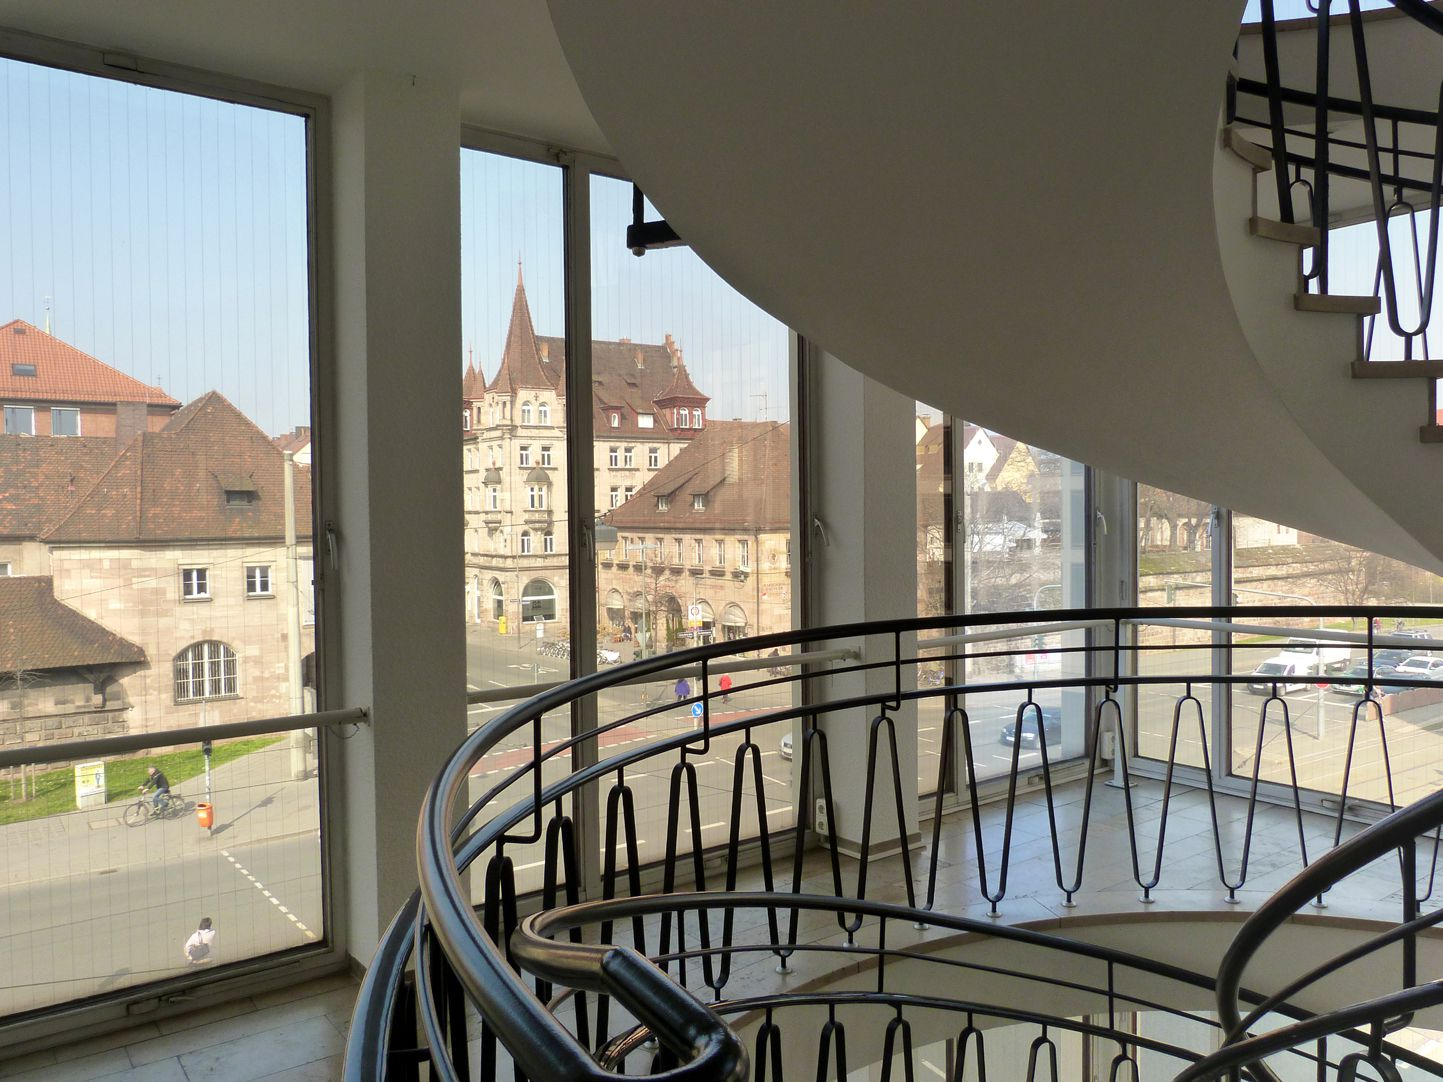 Administration building on Königstorgraben Stairwell with view of the Old City